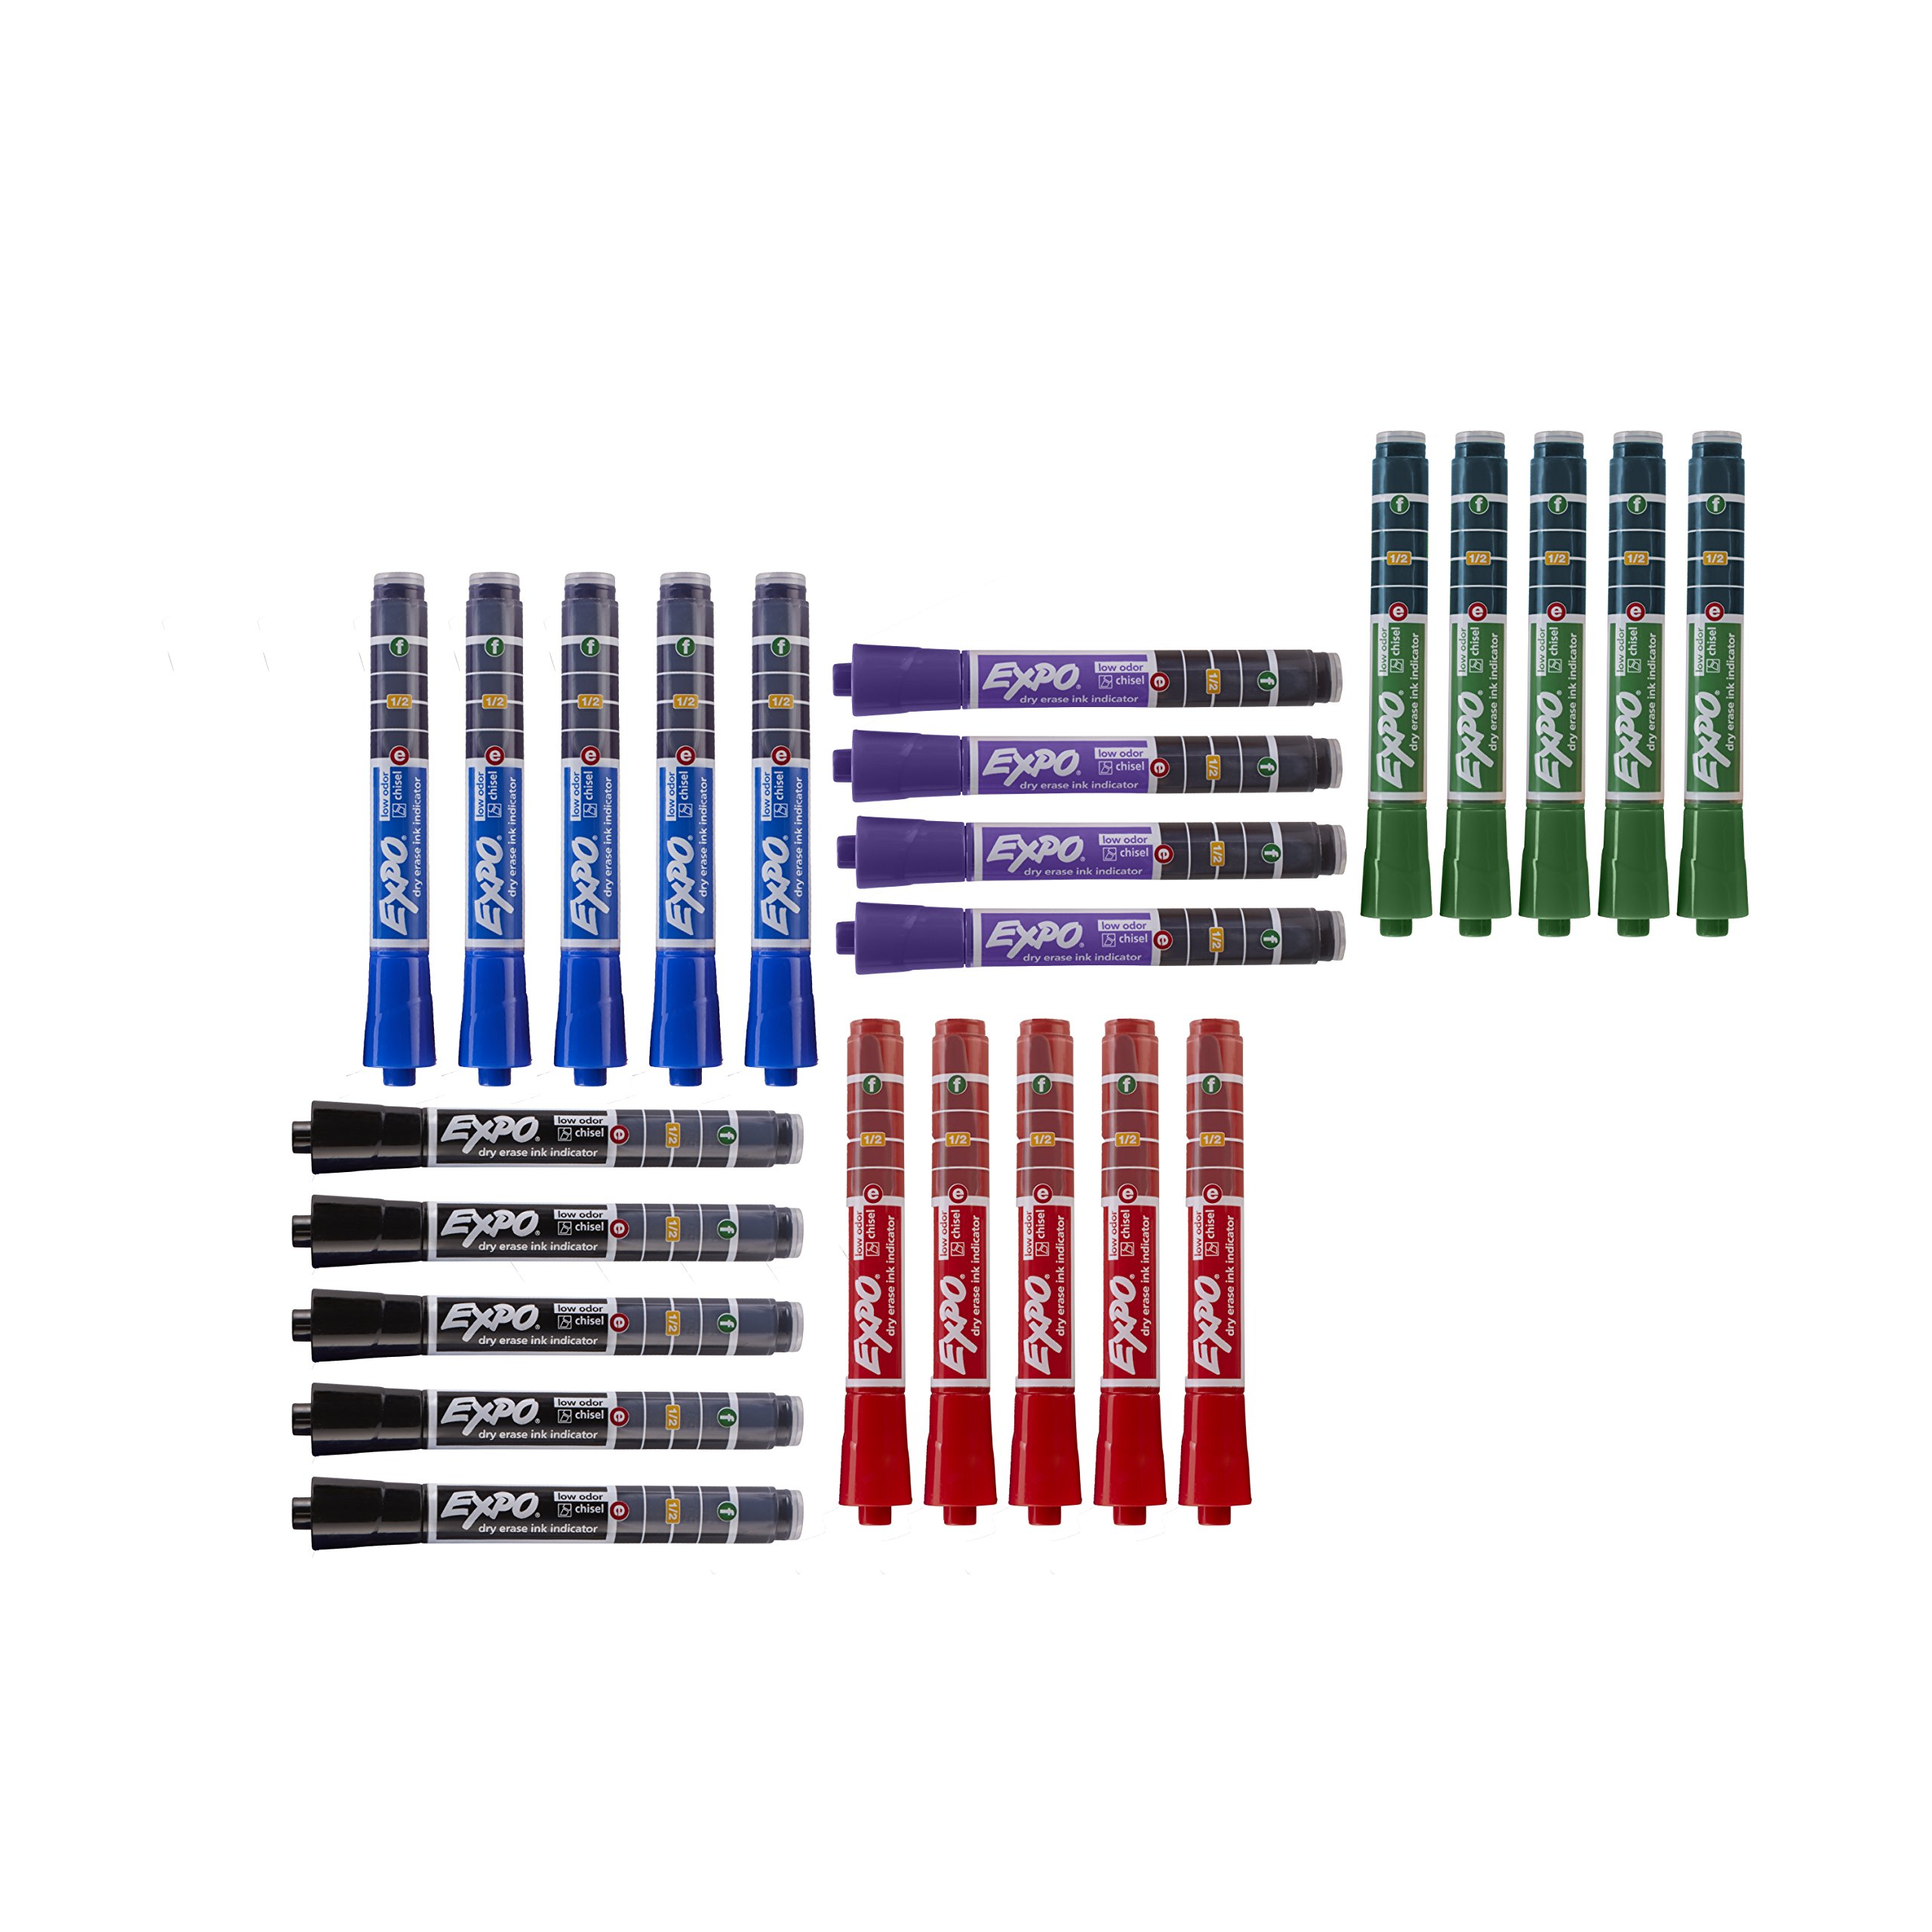 EXPO Dry Erase Markers with Ink Indicator, Chisel Tip, Assorted Colors, Box of 24 by Expo (Image #3)